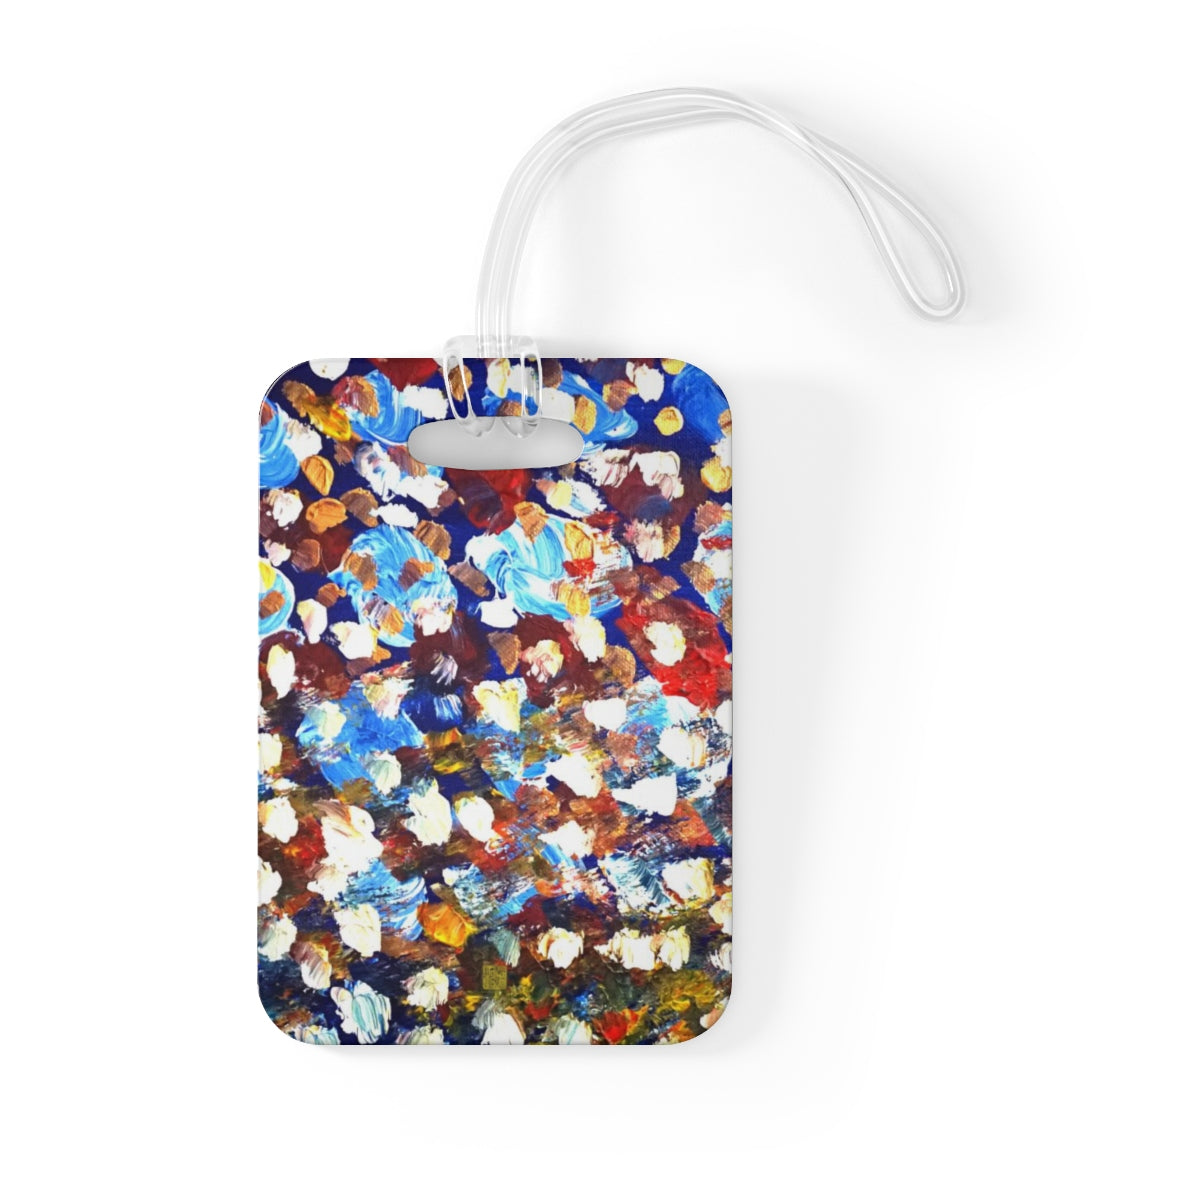 """Raindrops 1/3"", Abstract Art, Glossy Lightweight Plastic Bag Tag, Made in USA - alicechanart"